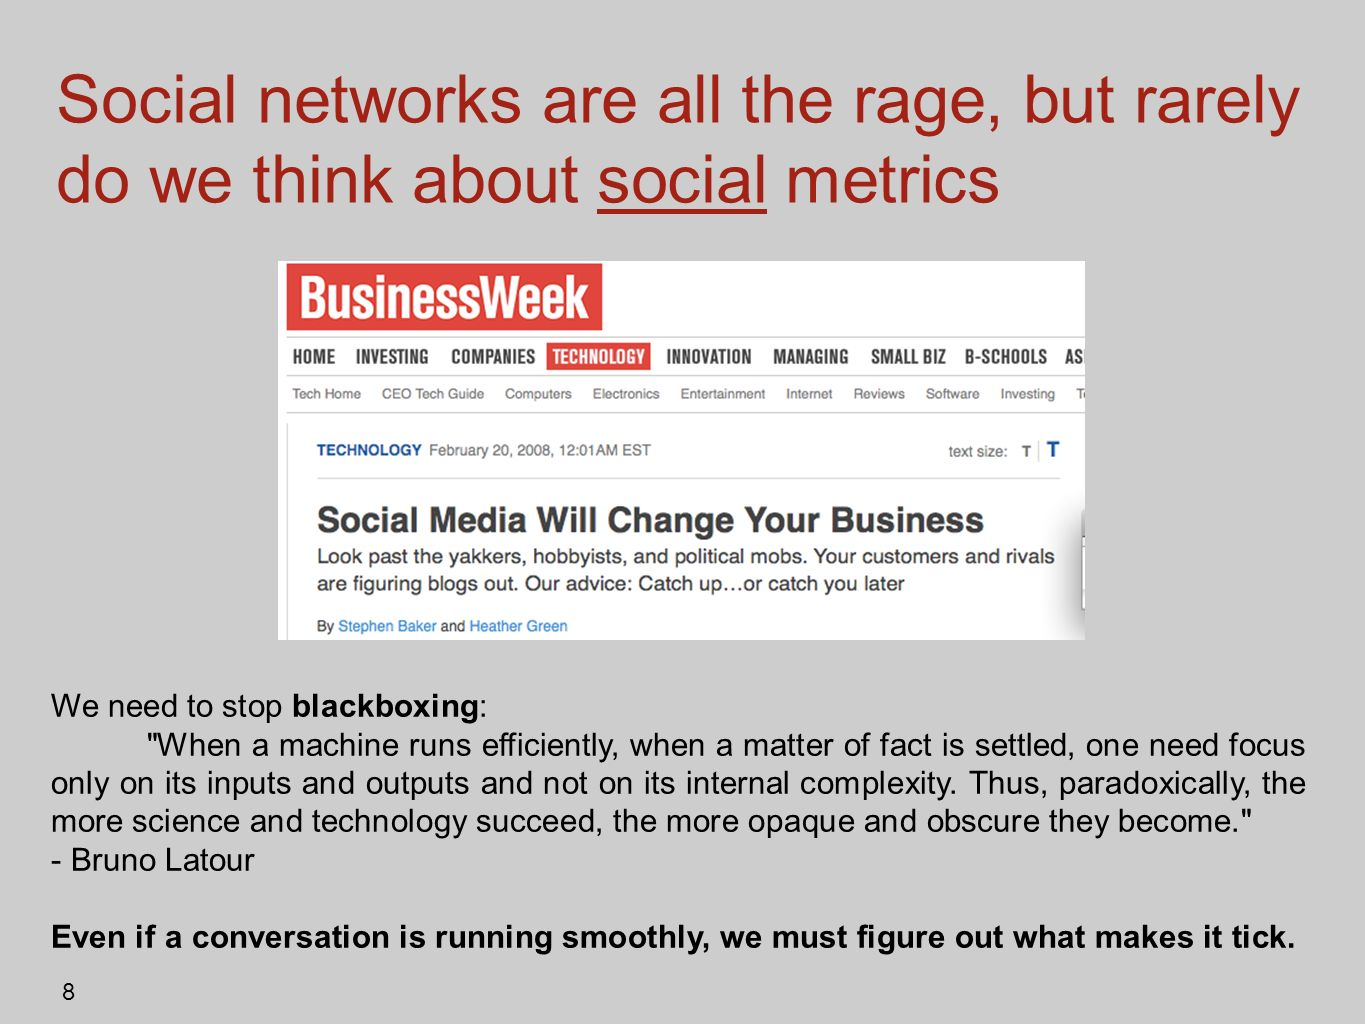 Social networks are all the rage, but rarely do we think about social metrics